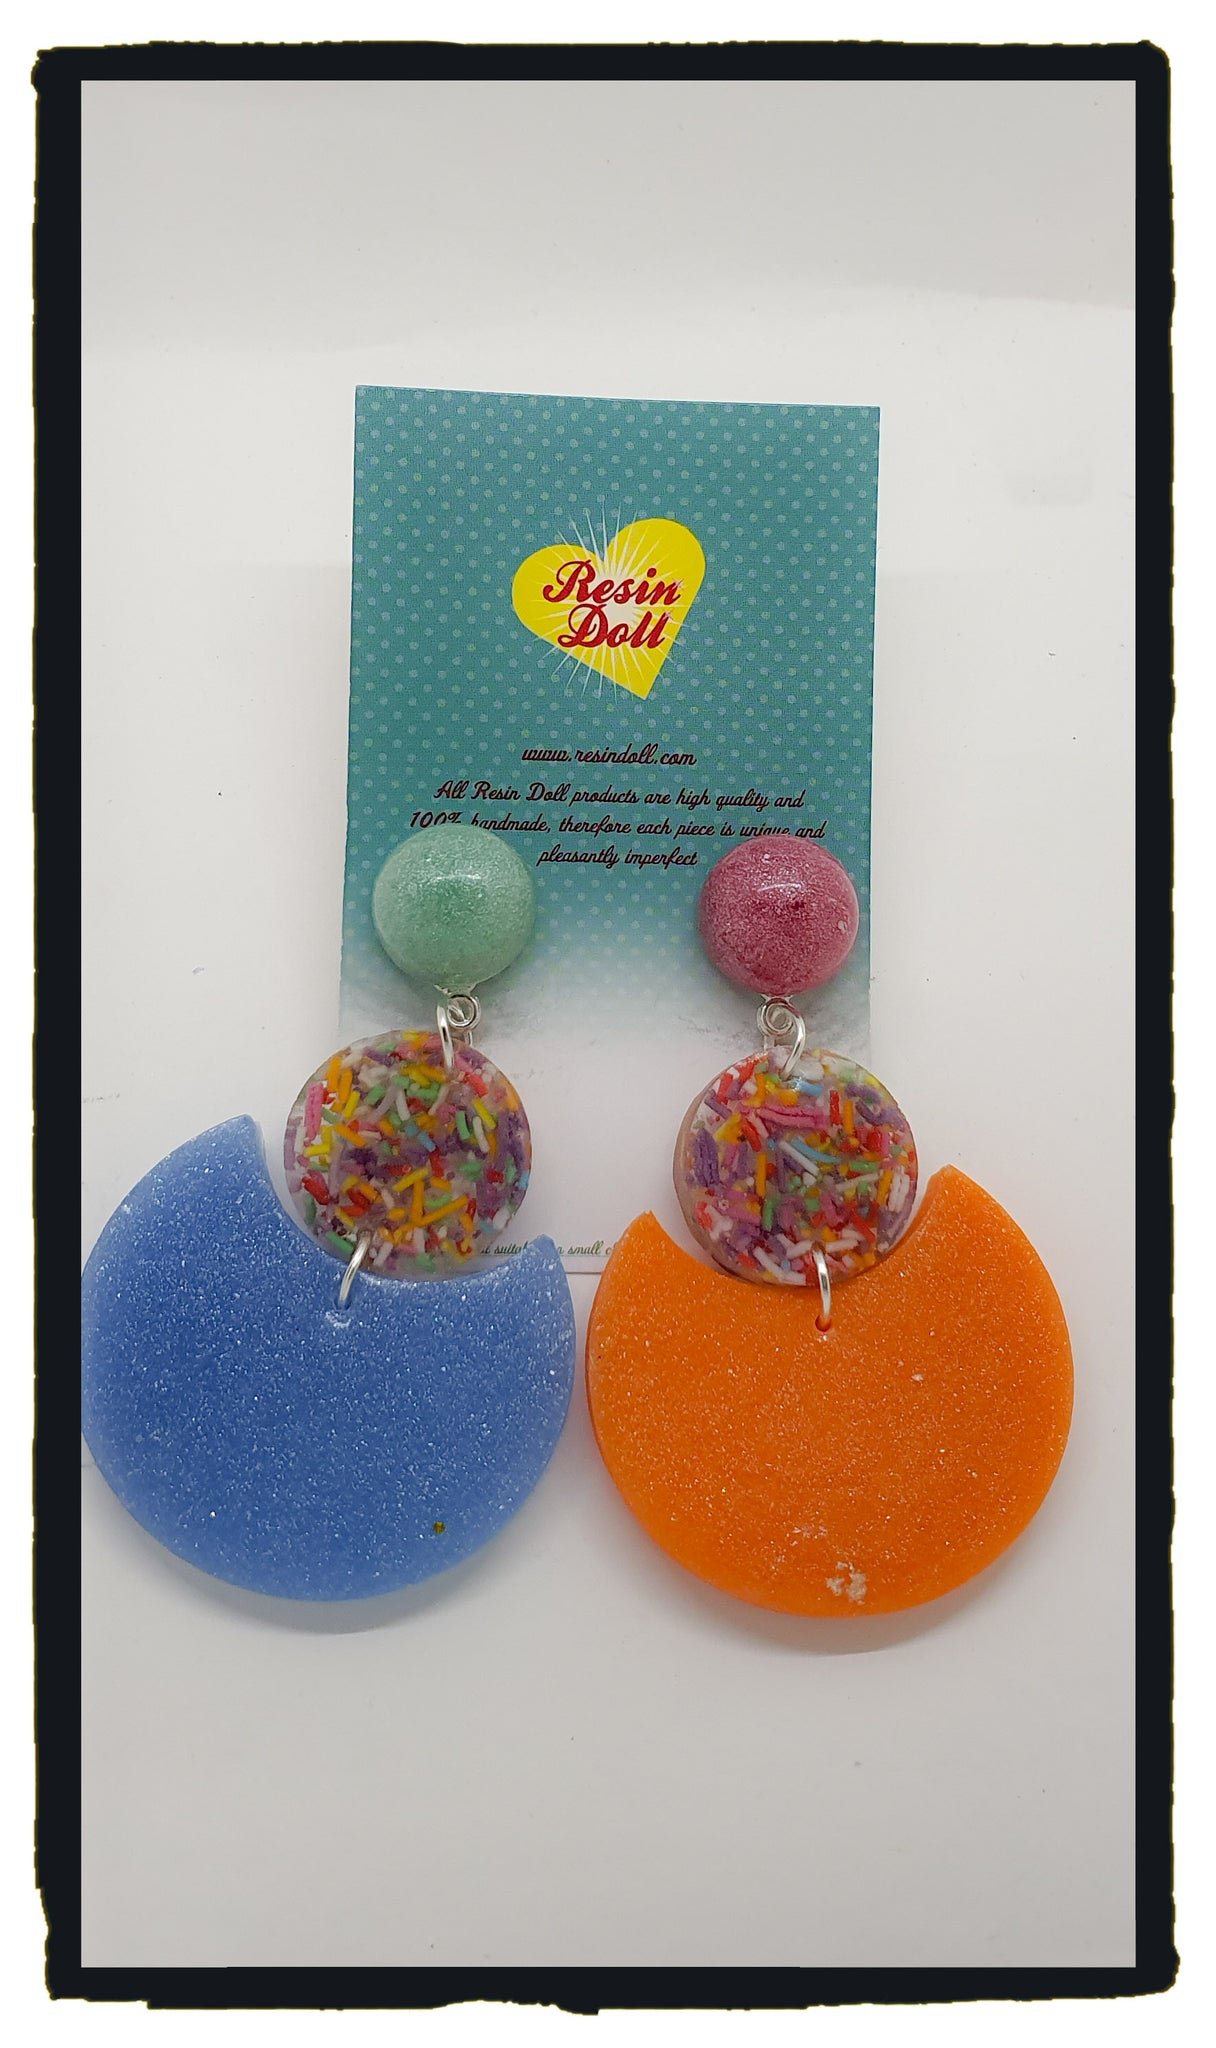 Pastel sprinkles Round Round Baby drop earrings (new design)